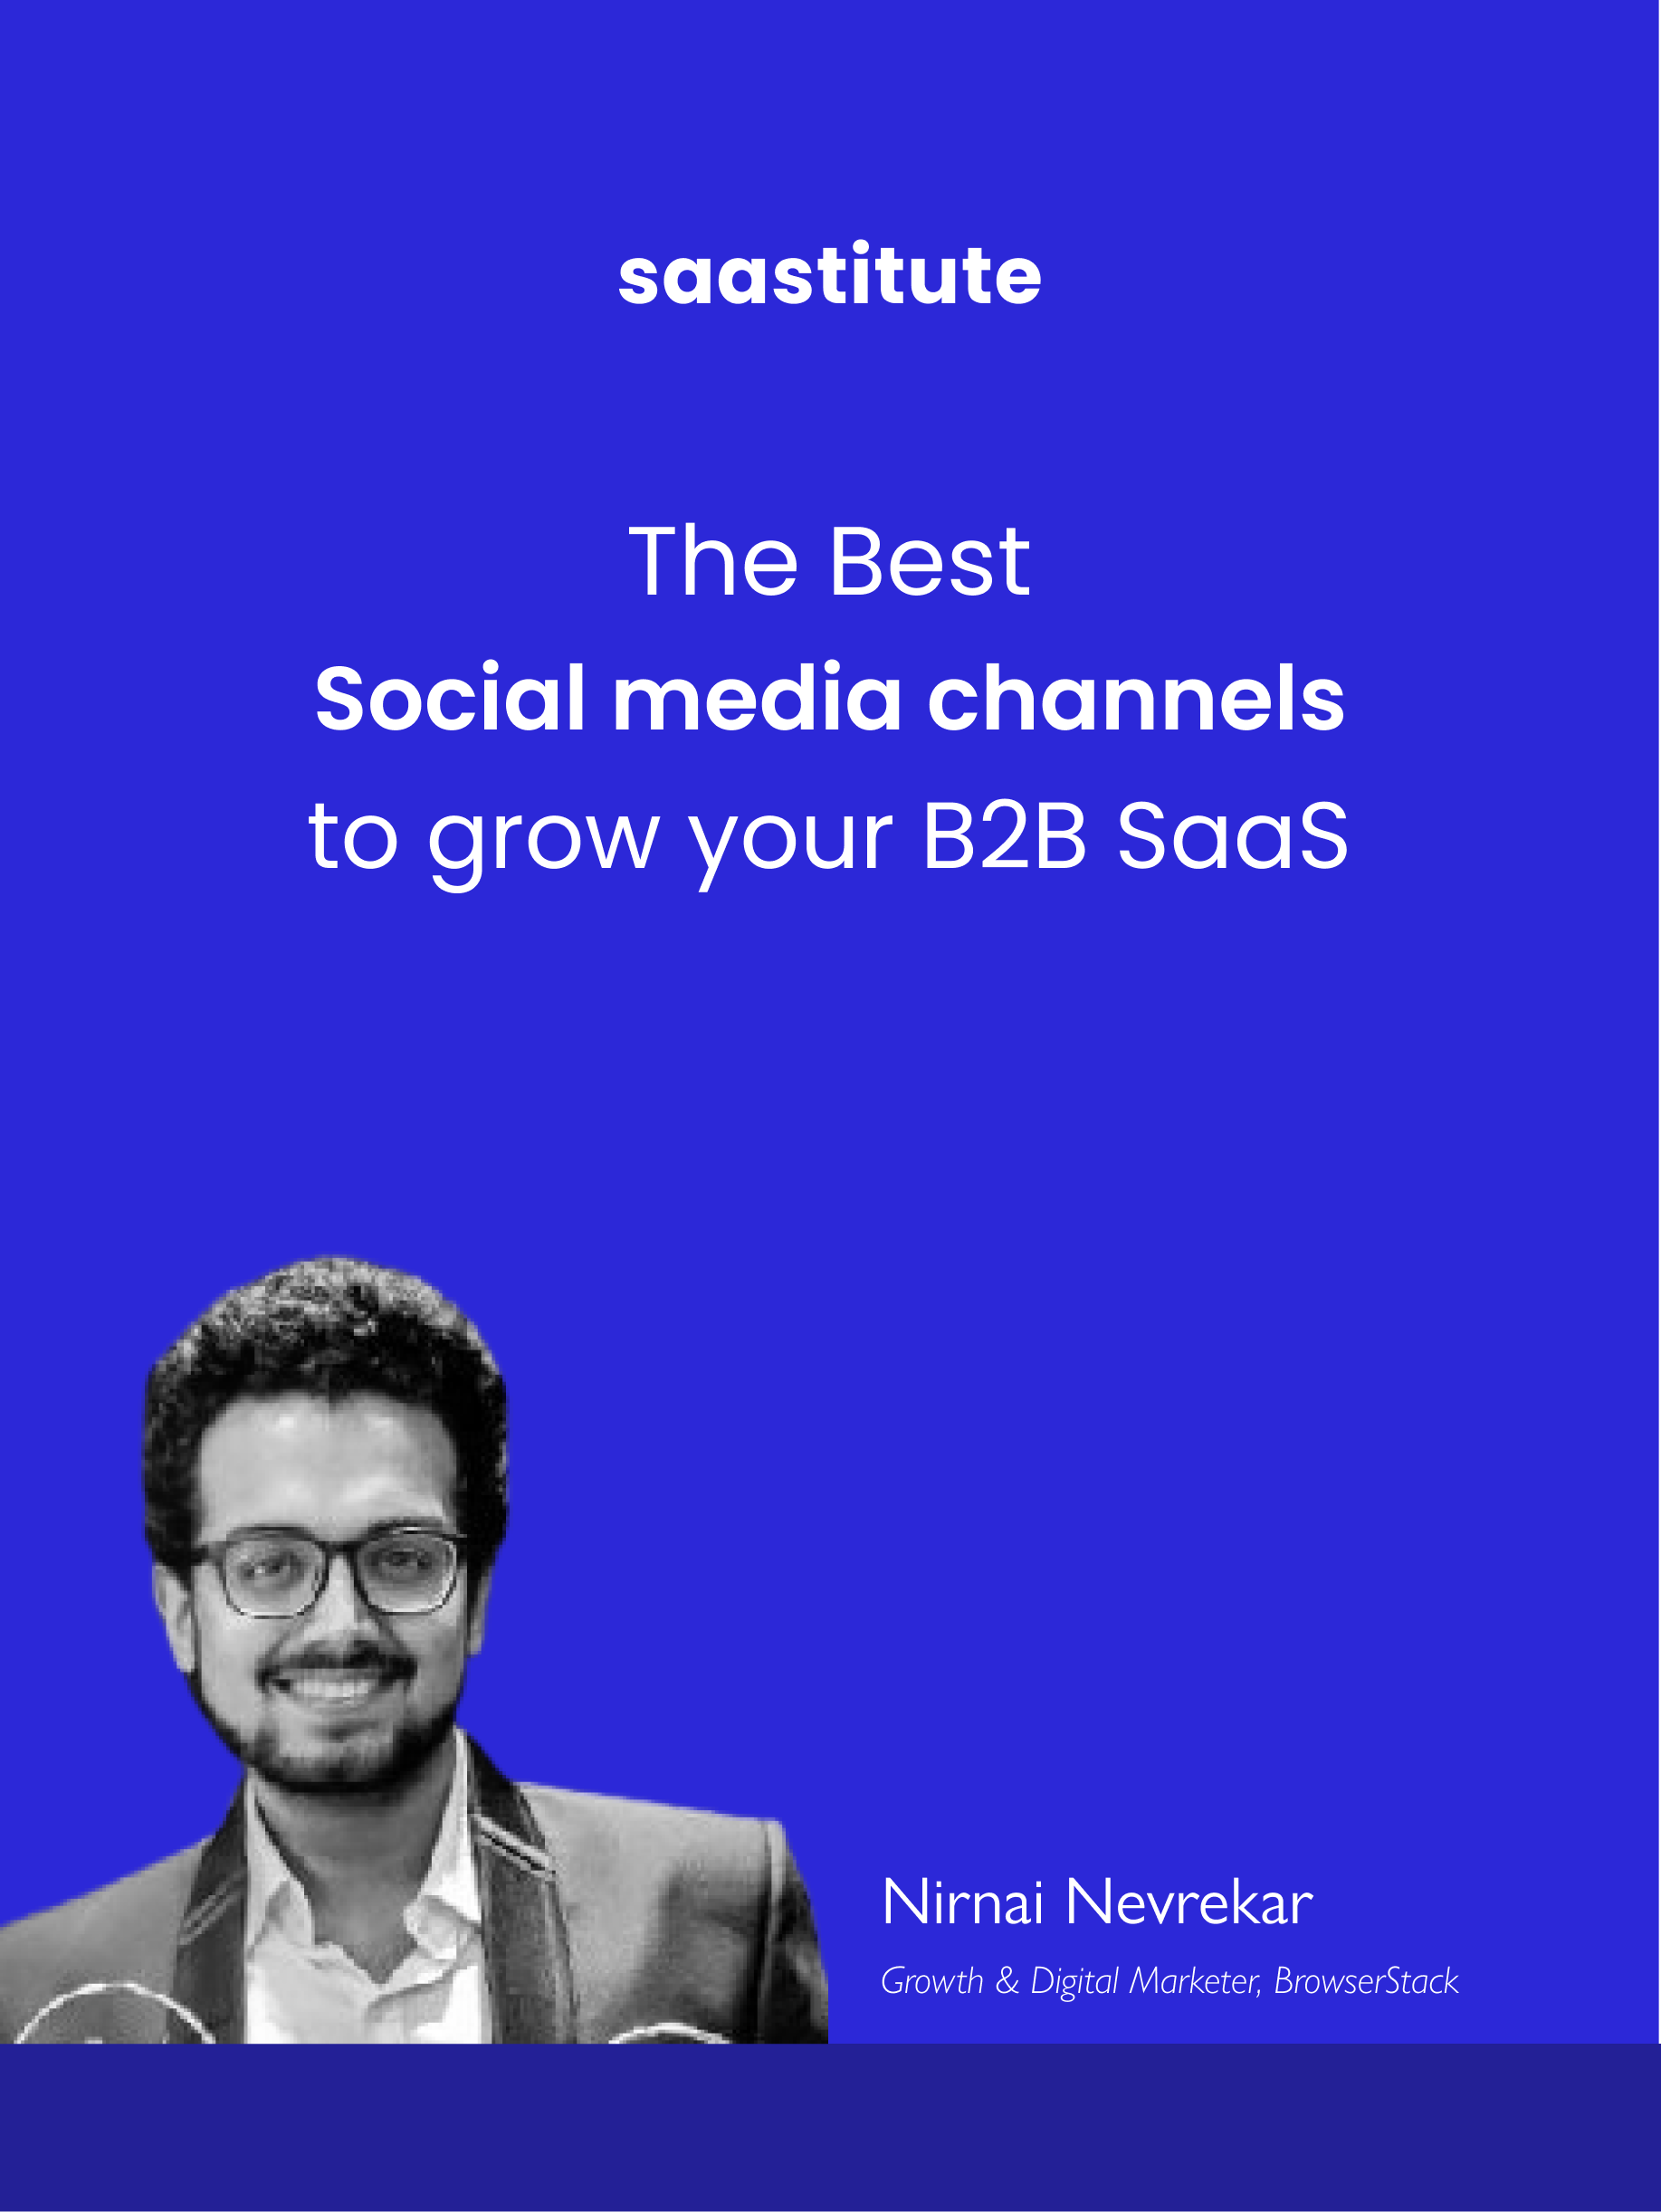 Best Social Media Channels to Grow your B2B SaaS